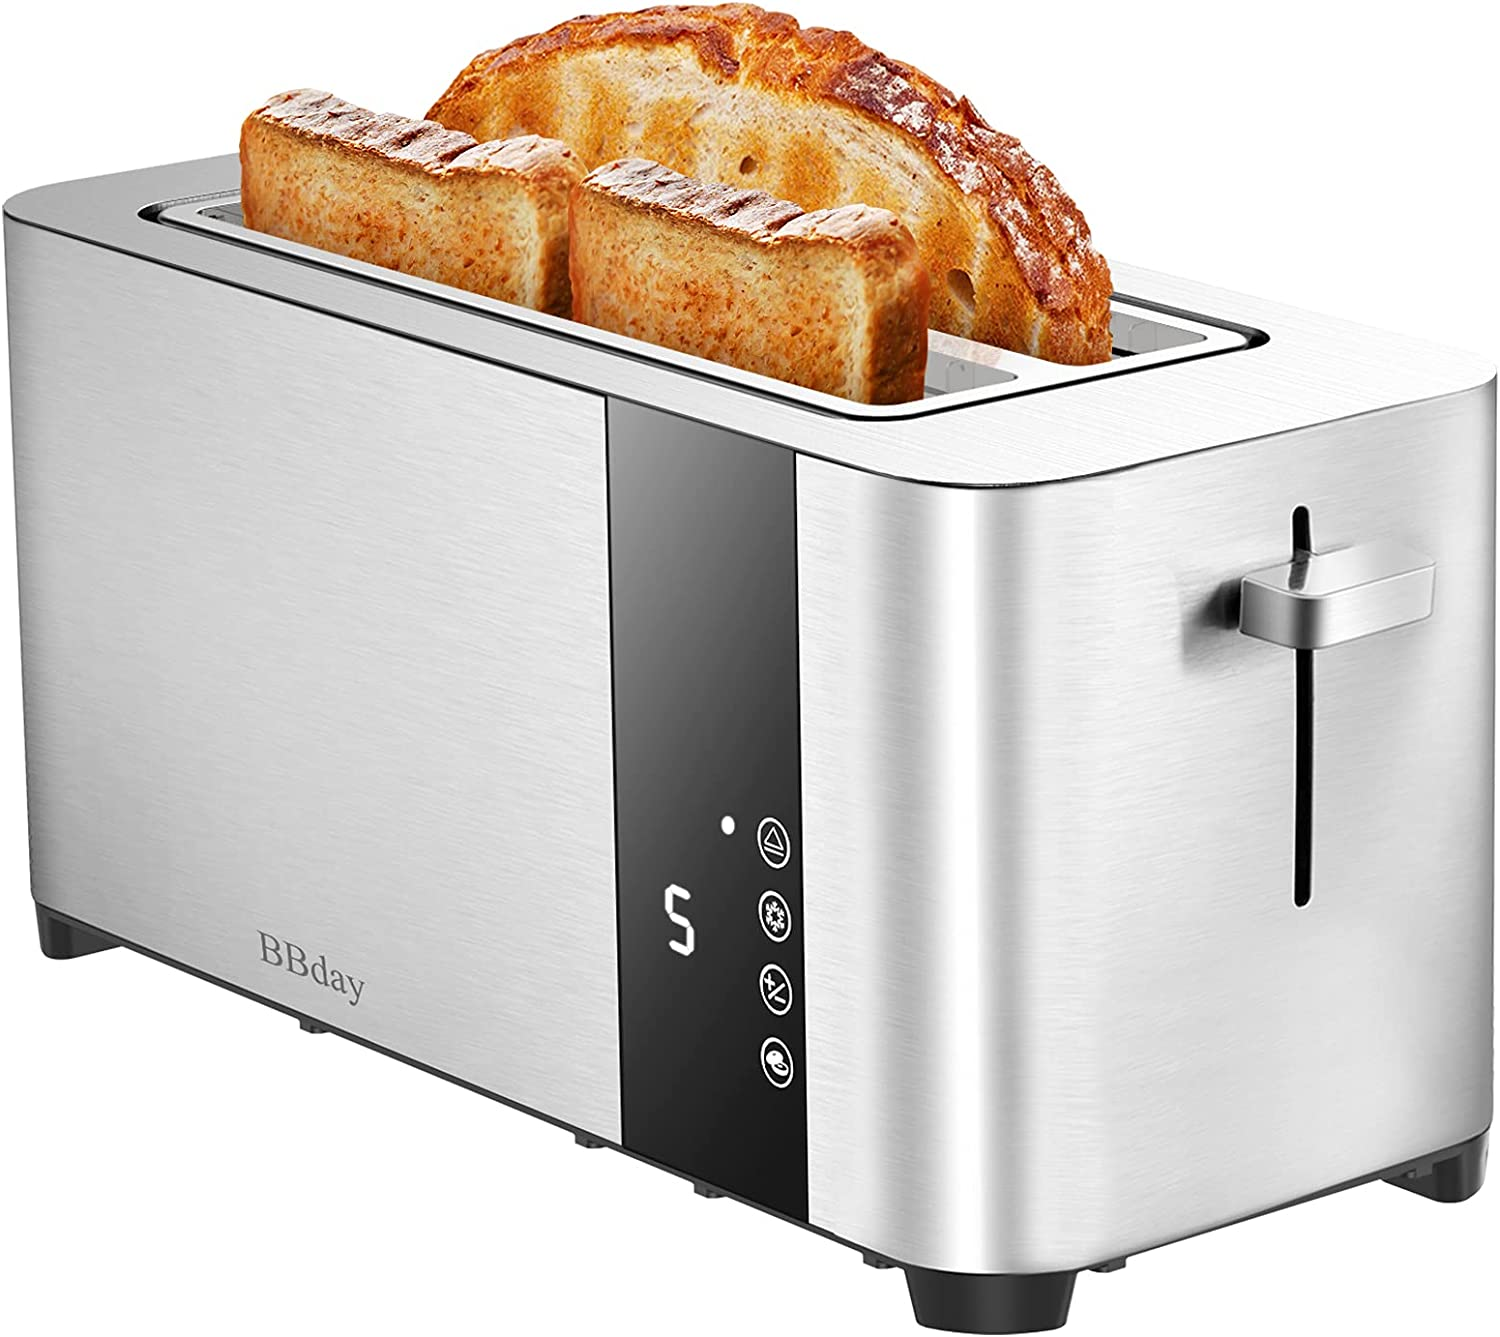 BBday Long Slot Toaster, 4 Slice Extra Wide Slots Stainless Steel Toasters,with LCD Display Touchscreen ,6 Bread Shade Settings, Defrost/Bagel/Cancel, Removable Crumb Tray, 1300W,Silver